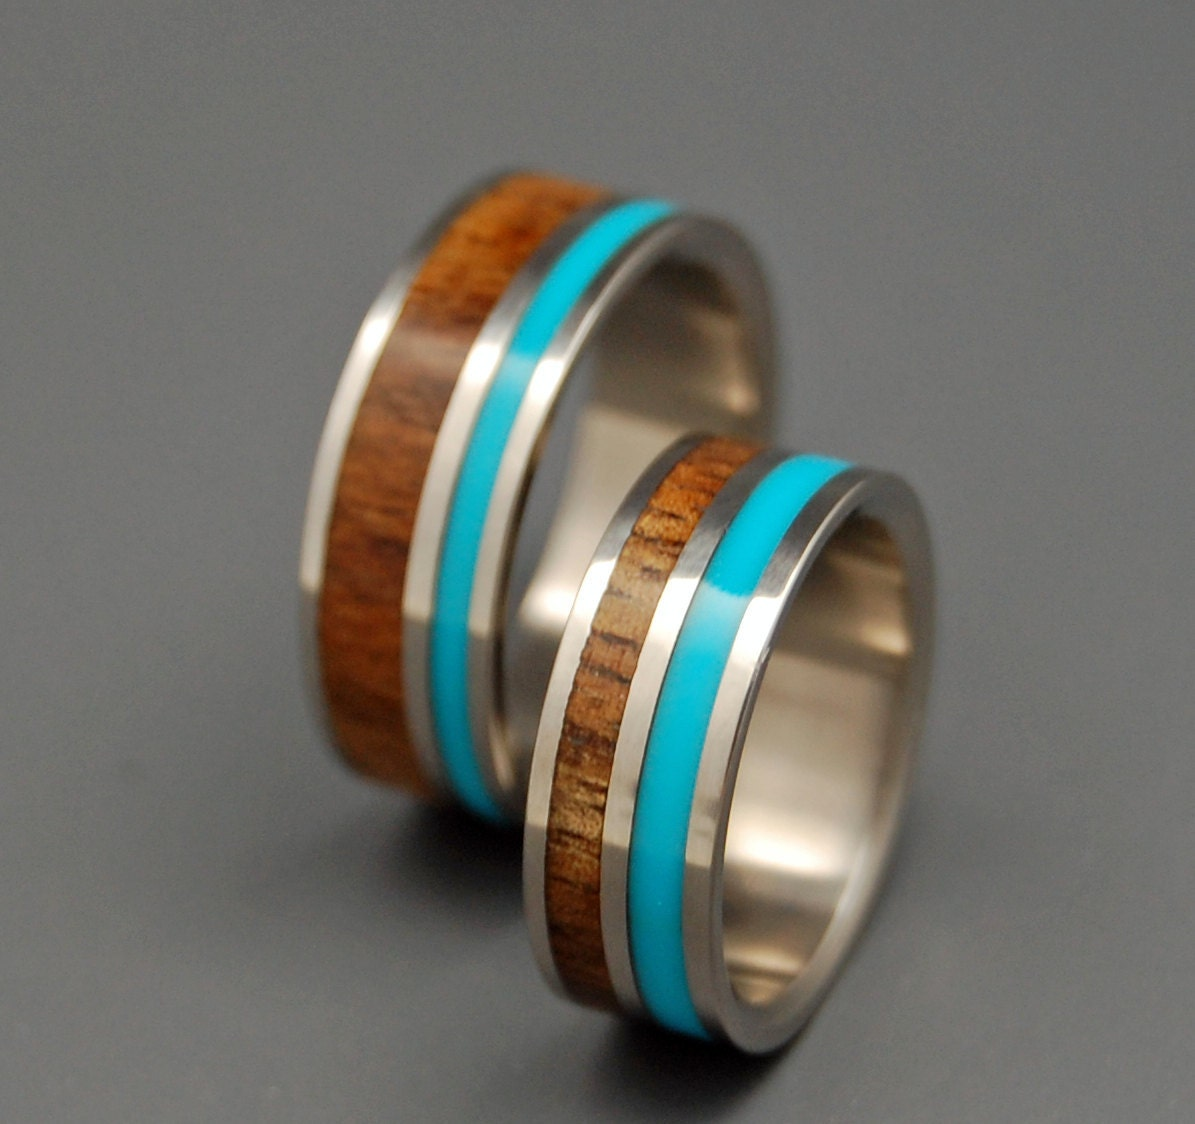 zoom - Wooden Wedding Rings